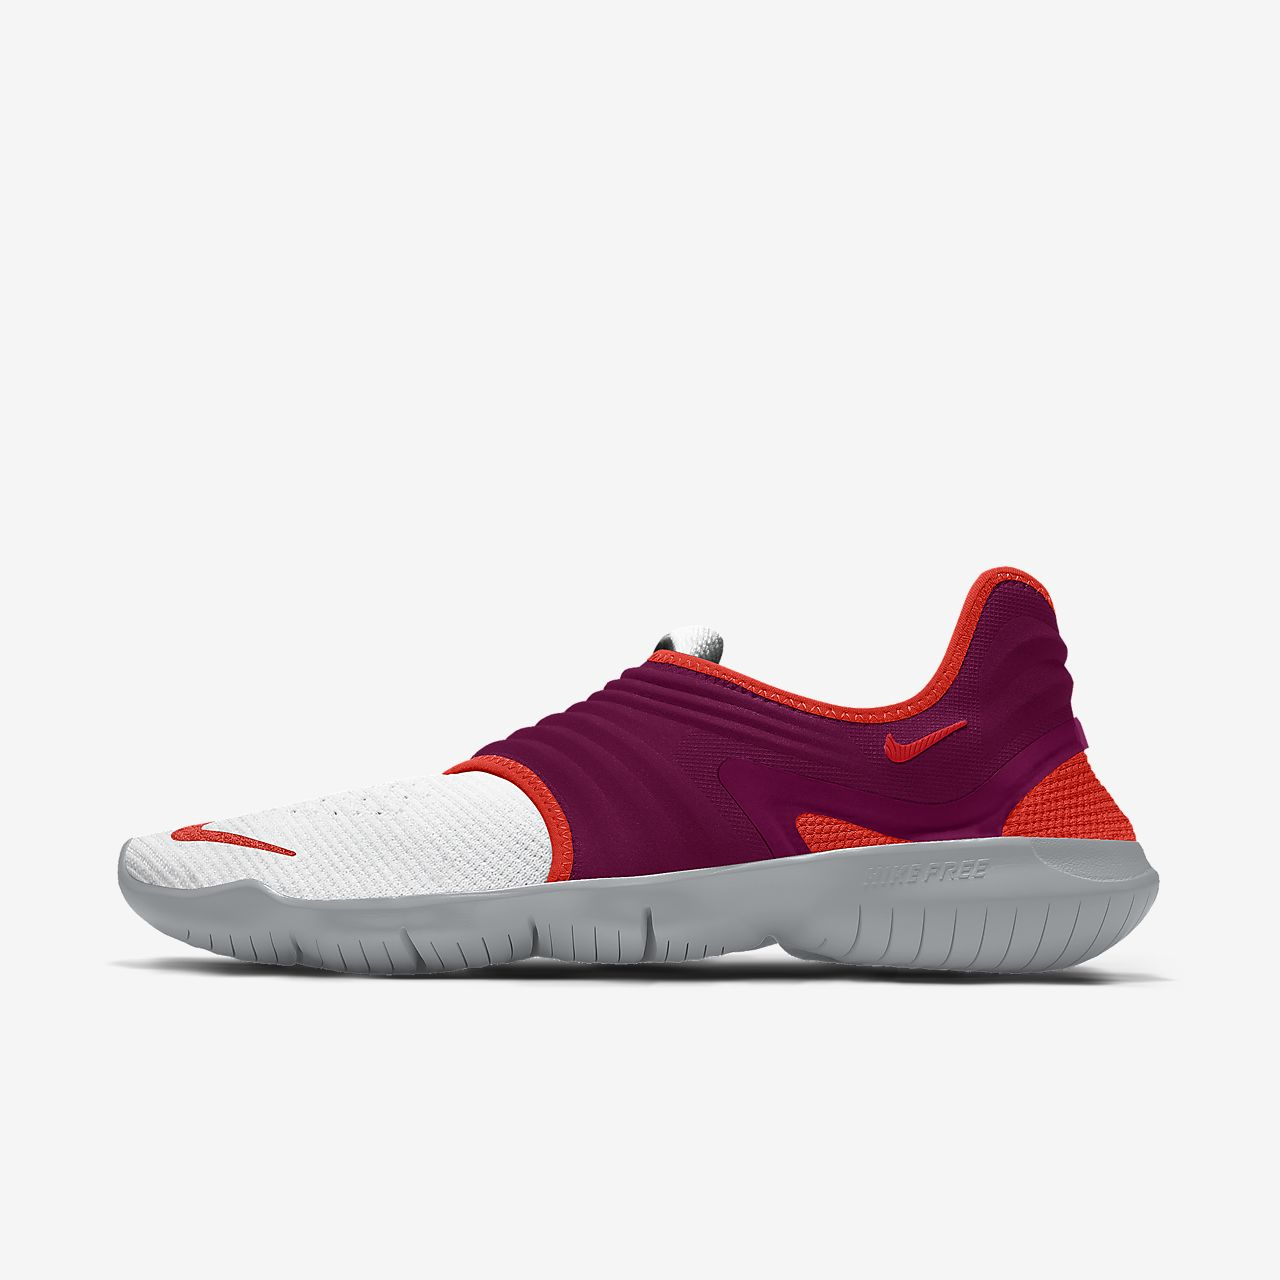 Nike Free RN Flyknit 3.0 By You Custom Women's Running Shoe